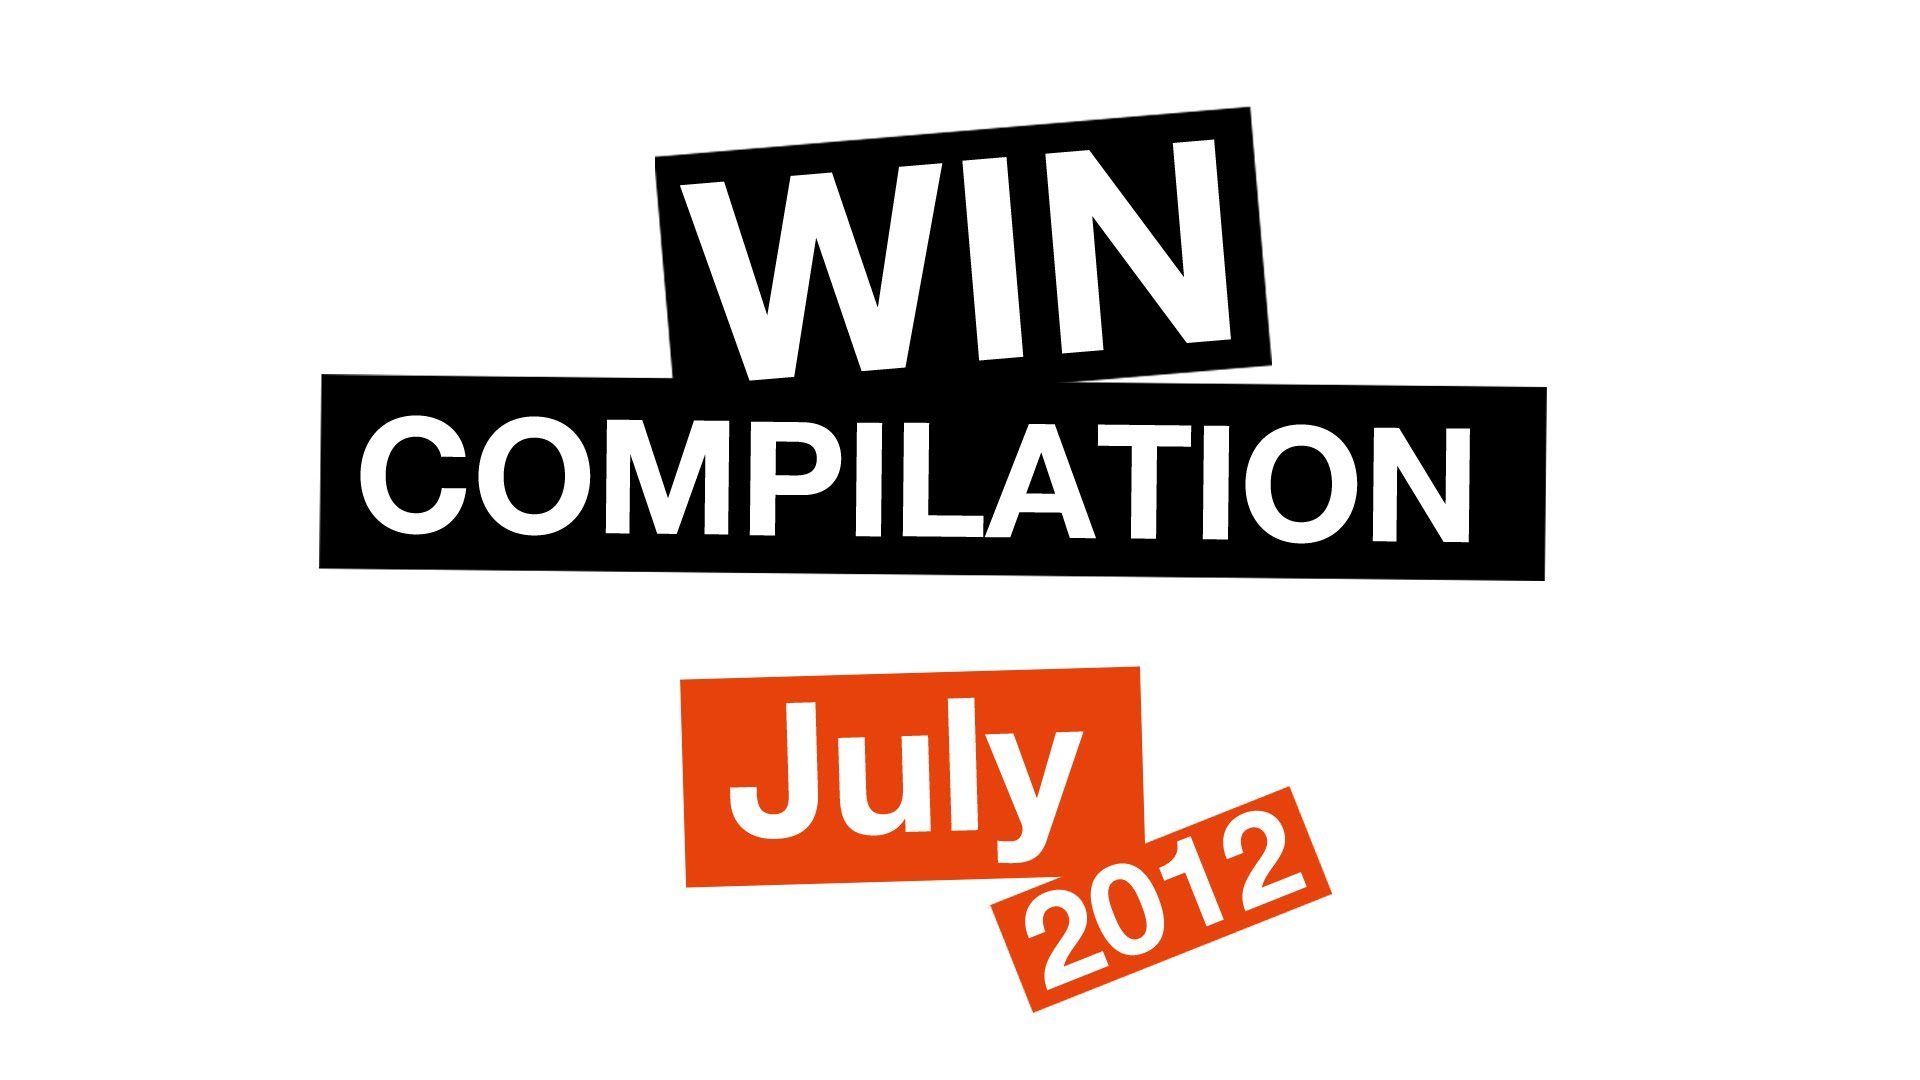 WIN Compilation July 2012